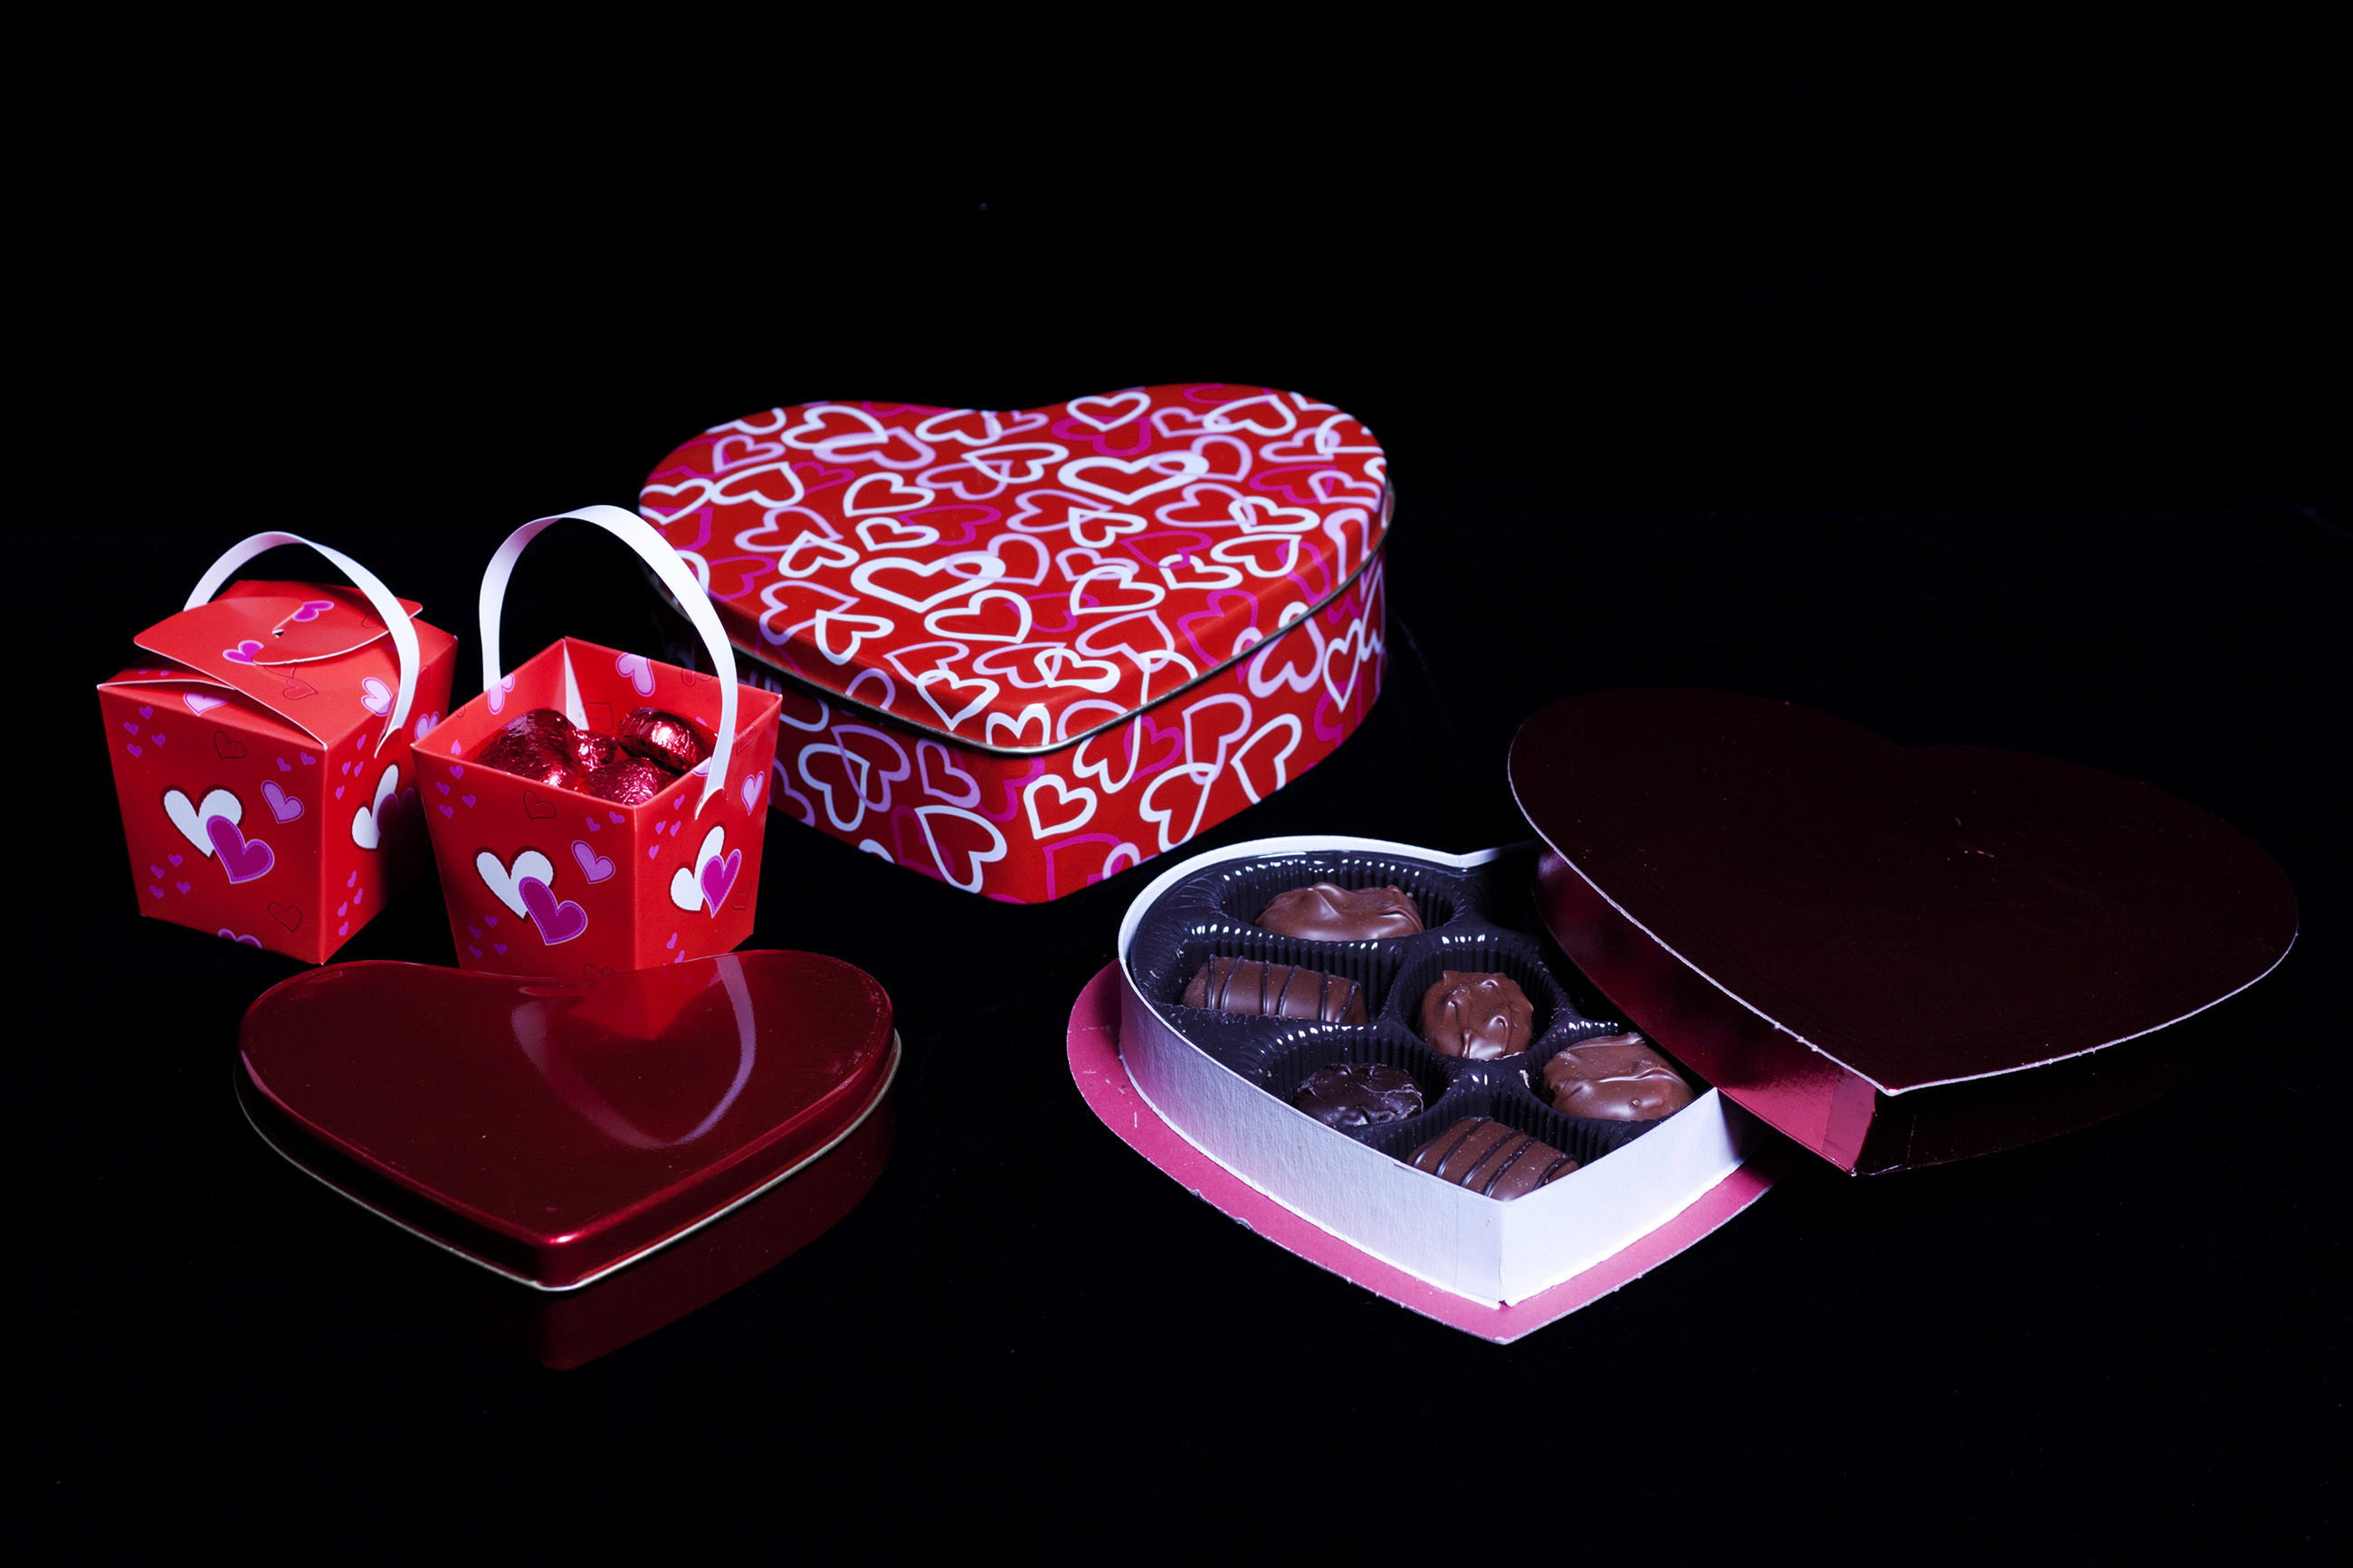 Valentines day gift and chocolates, Affection, Ribbon, Objects, Package, HQ Photo